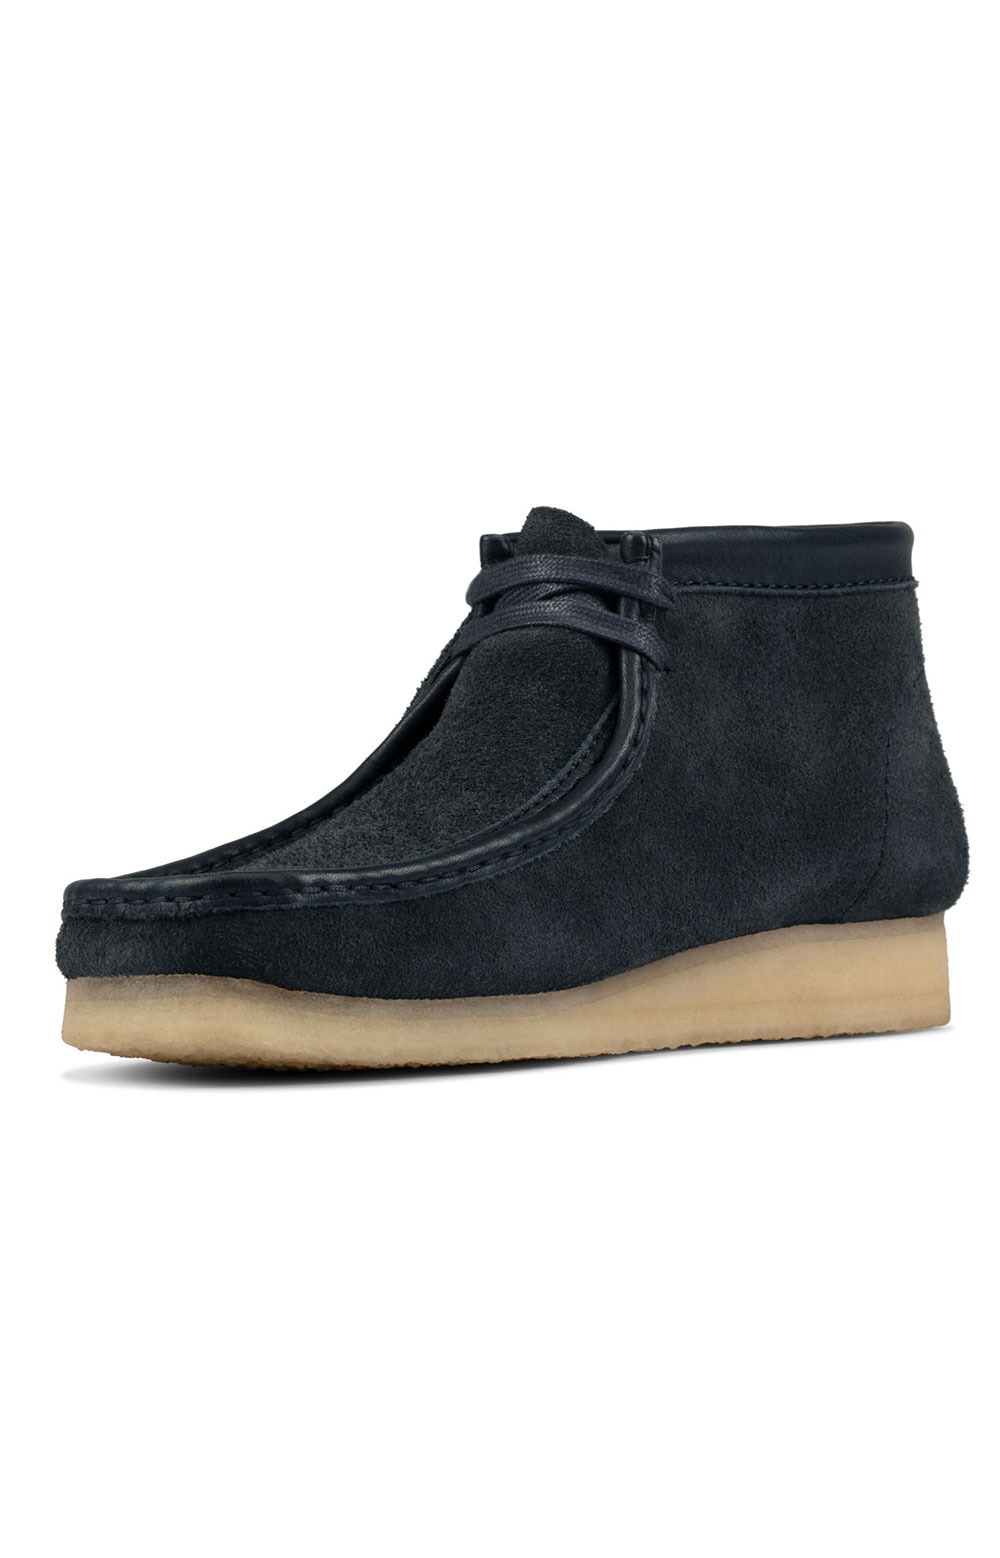 (26155048) Wallabee Boots - Navy Hairy Suede  4